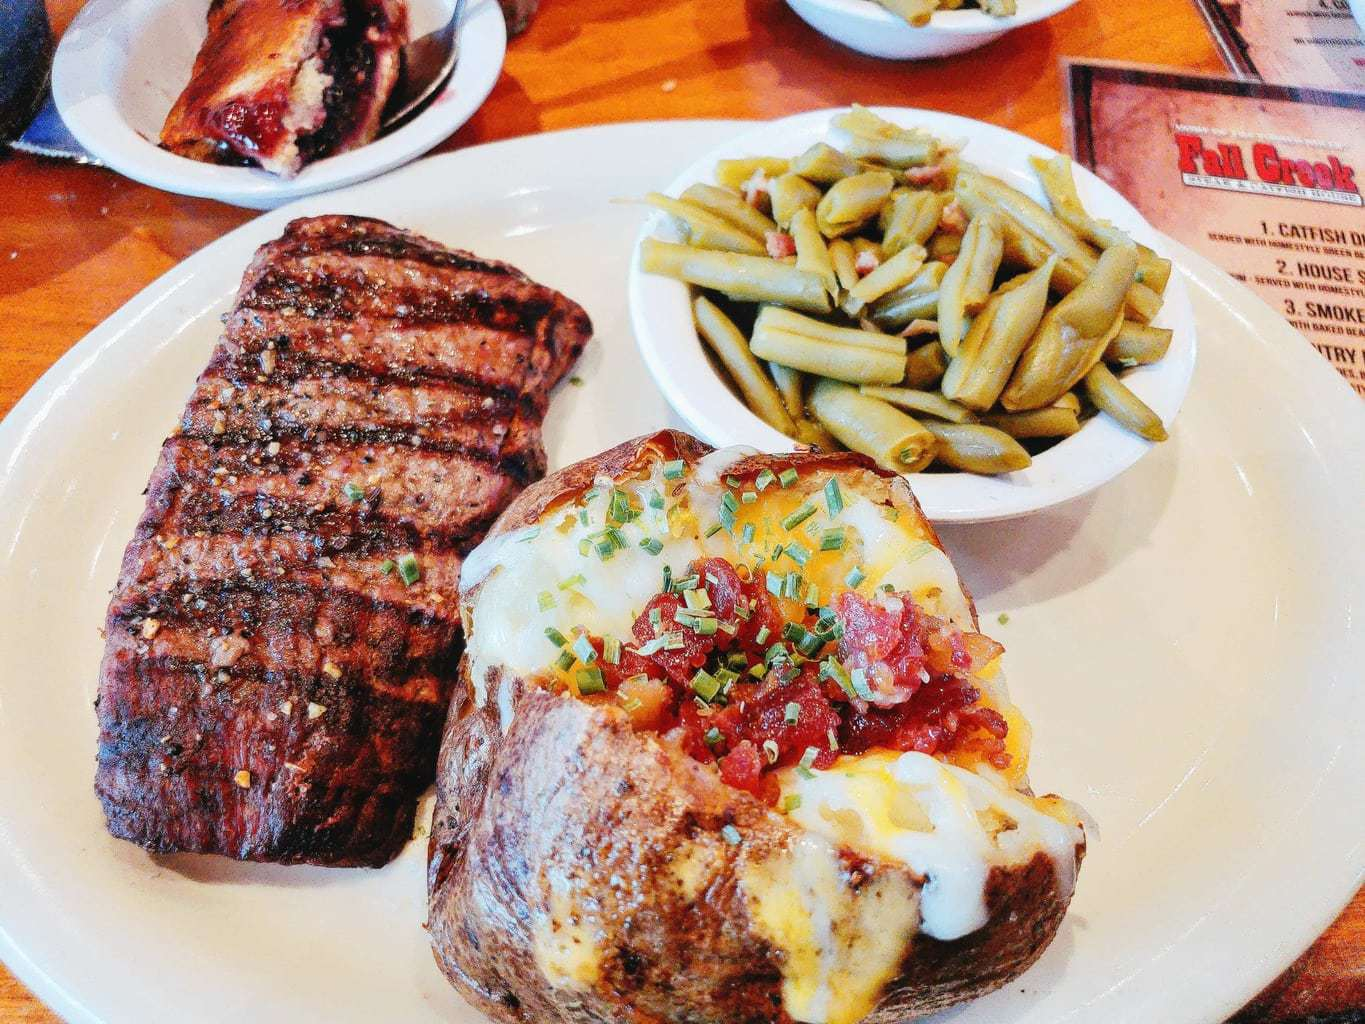 fall creek steak house in Branson, Miss Molly's Mill, Branson restaurants, fun restaurants in Branson, restaurants in Branson, dining in Branson